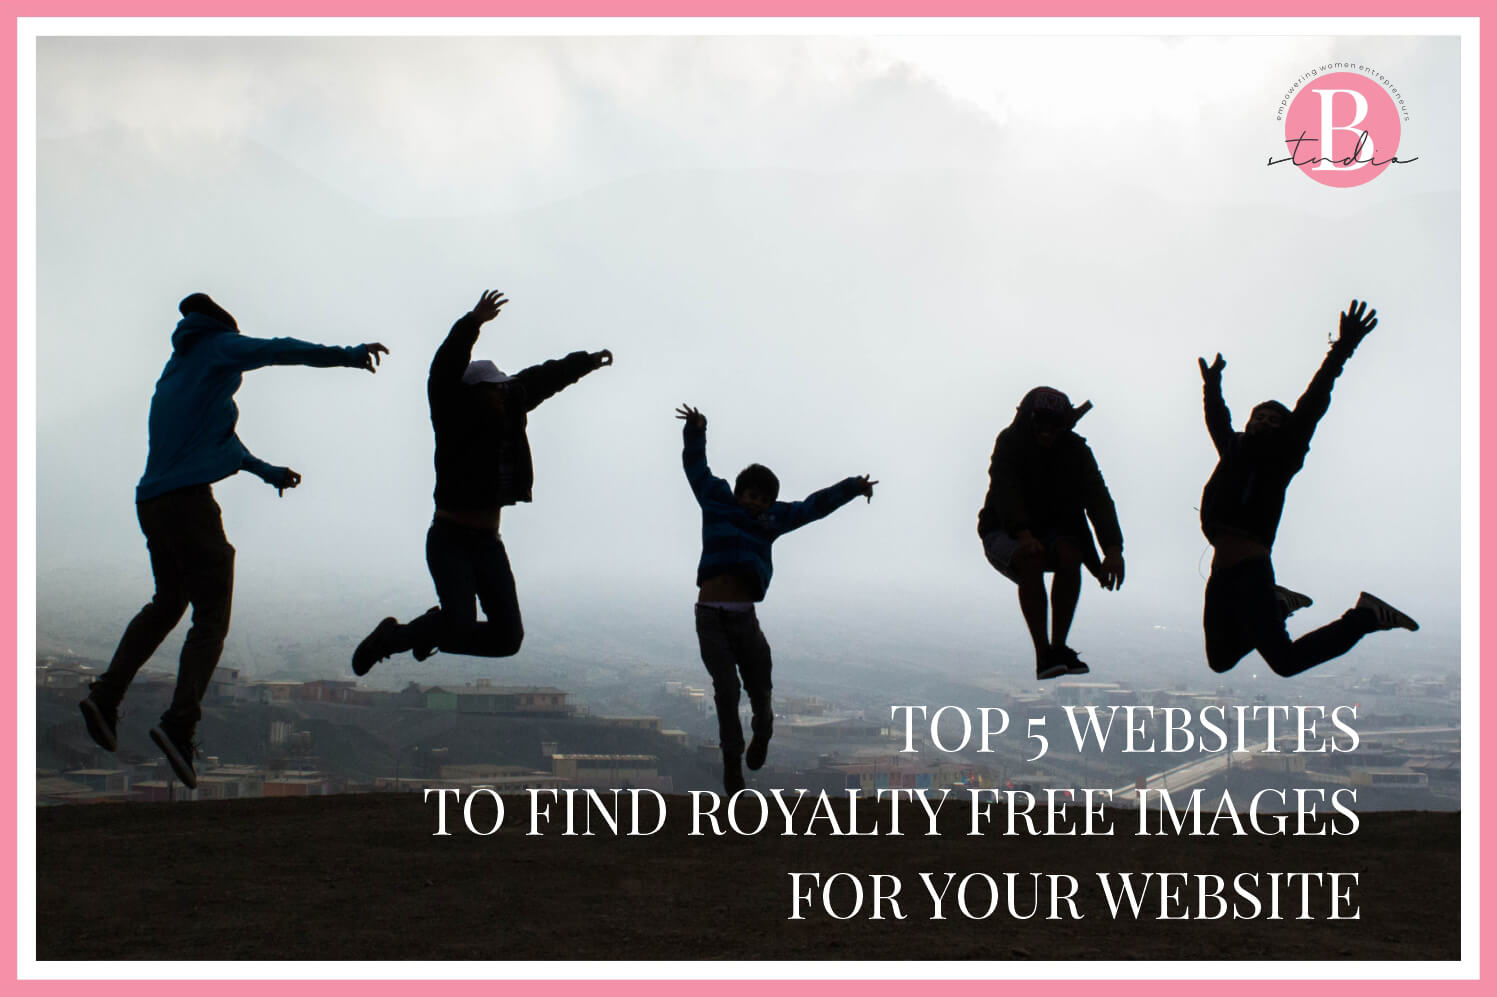 Top 5 Websites to Find Royalty Free Images for Your Website imig